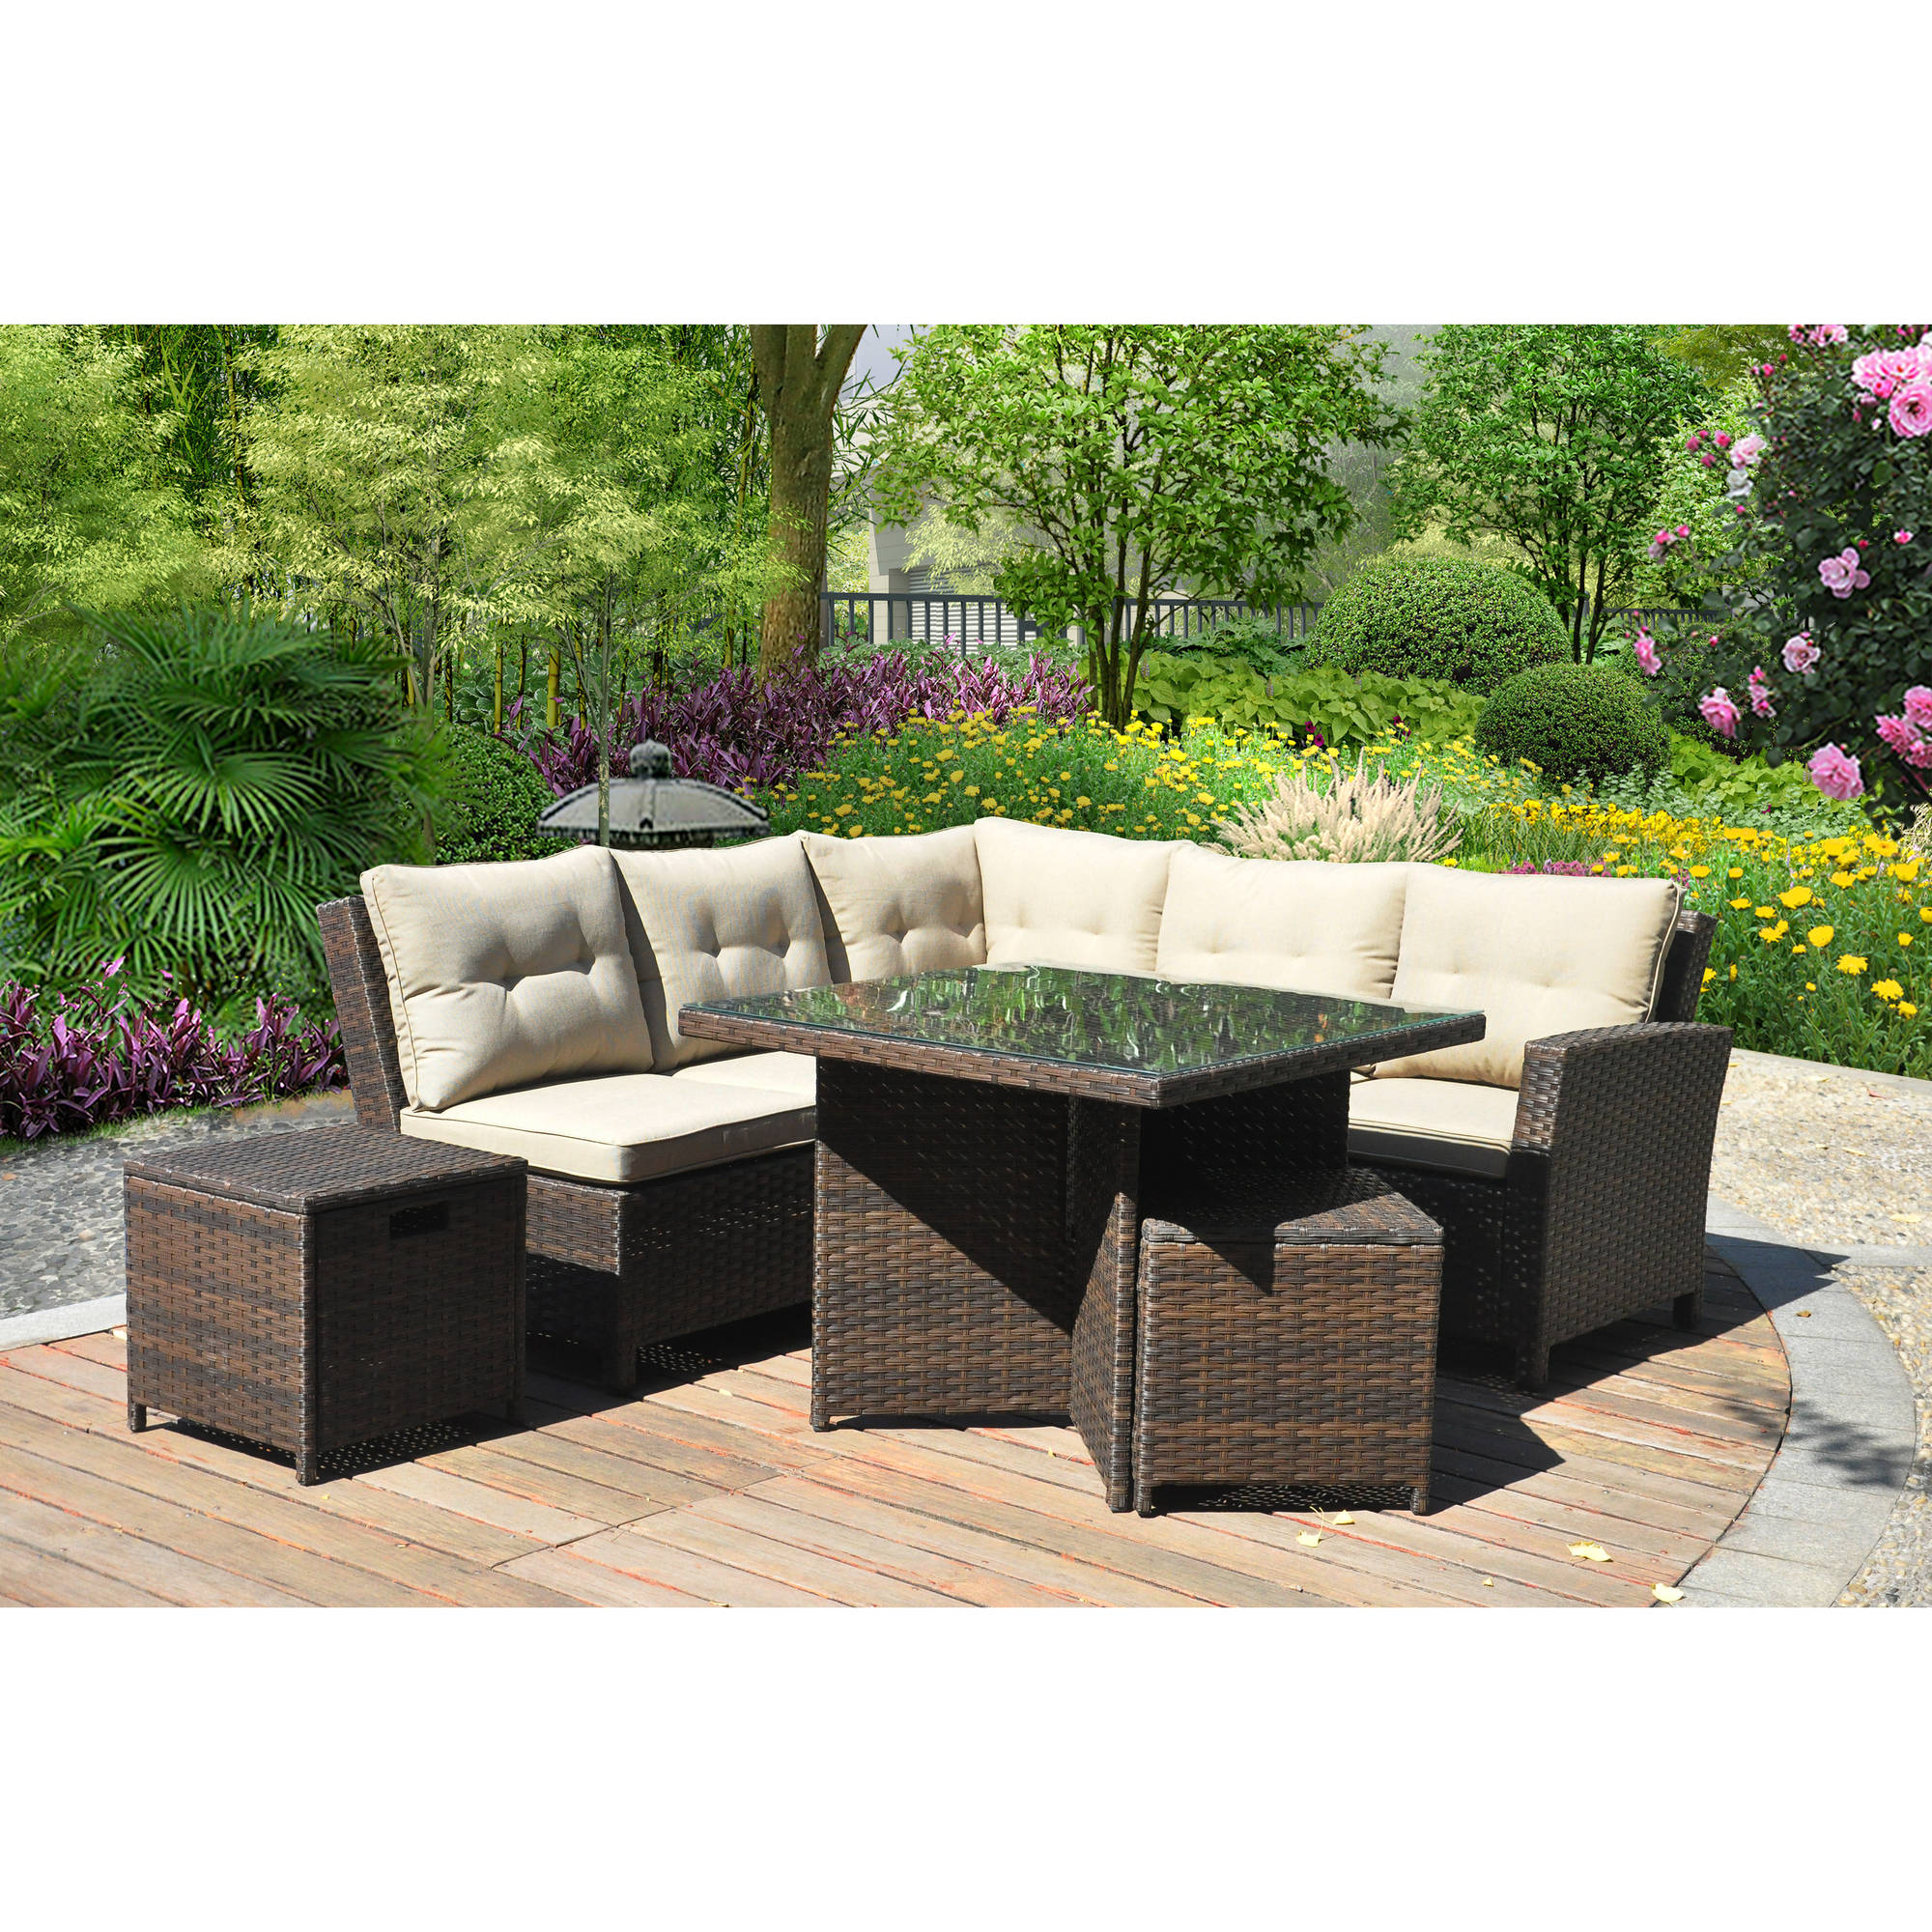 Better Homes And Gardens Baytown 5 Piece Woven Sectional Sofa Set, Seats 5